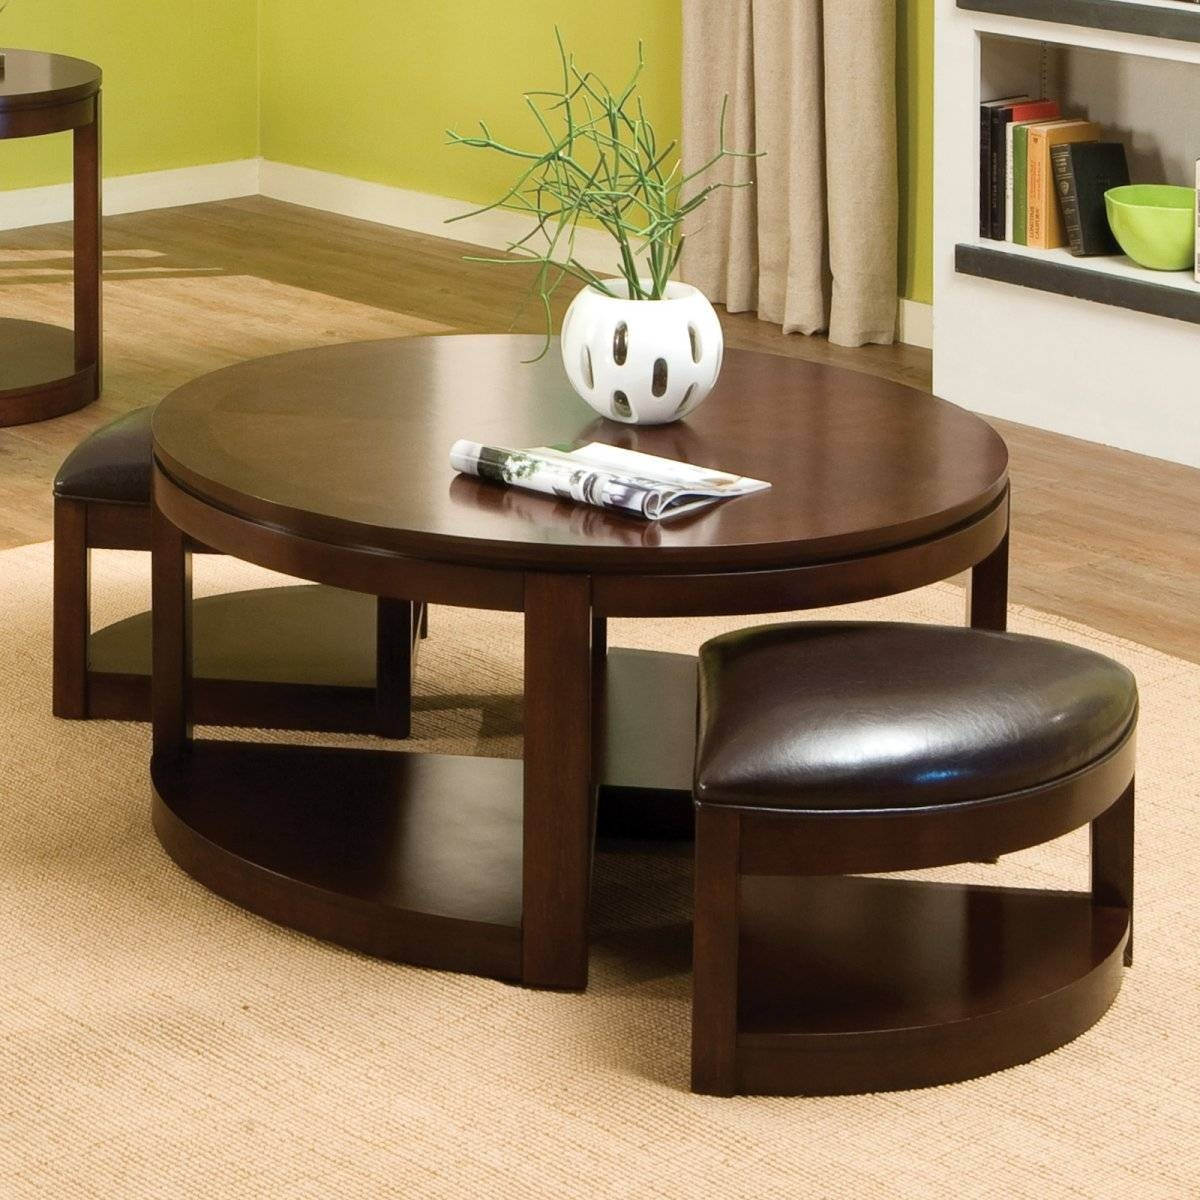 Choosing A Wonderful Oversized Coffee Table | Home Furniture And Decor Inside Oversized Round Coffee Tables (View 17 of 30)